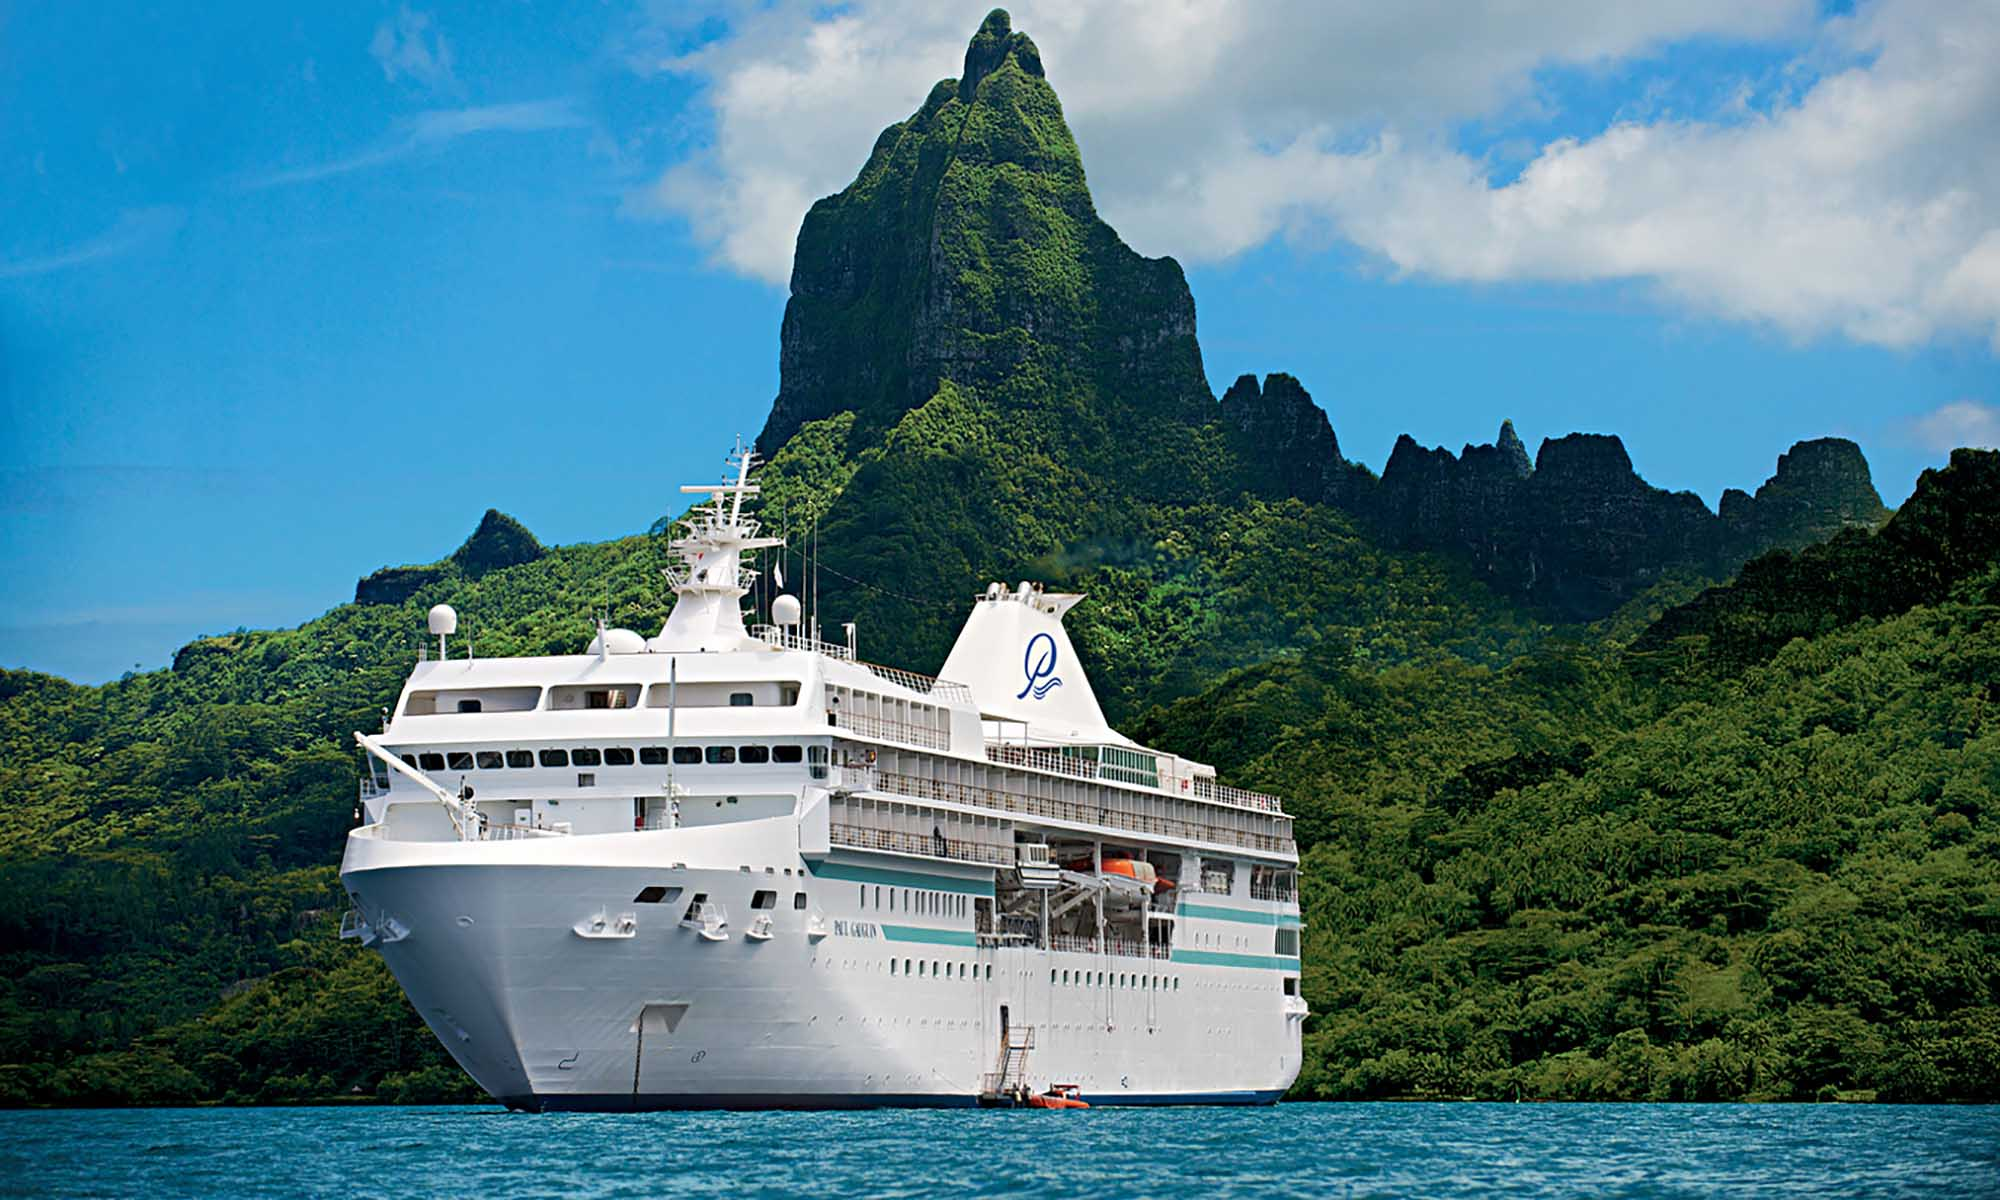 Paul Gauguin Cruise Ship on Moorea